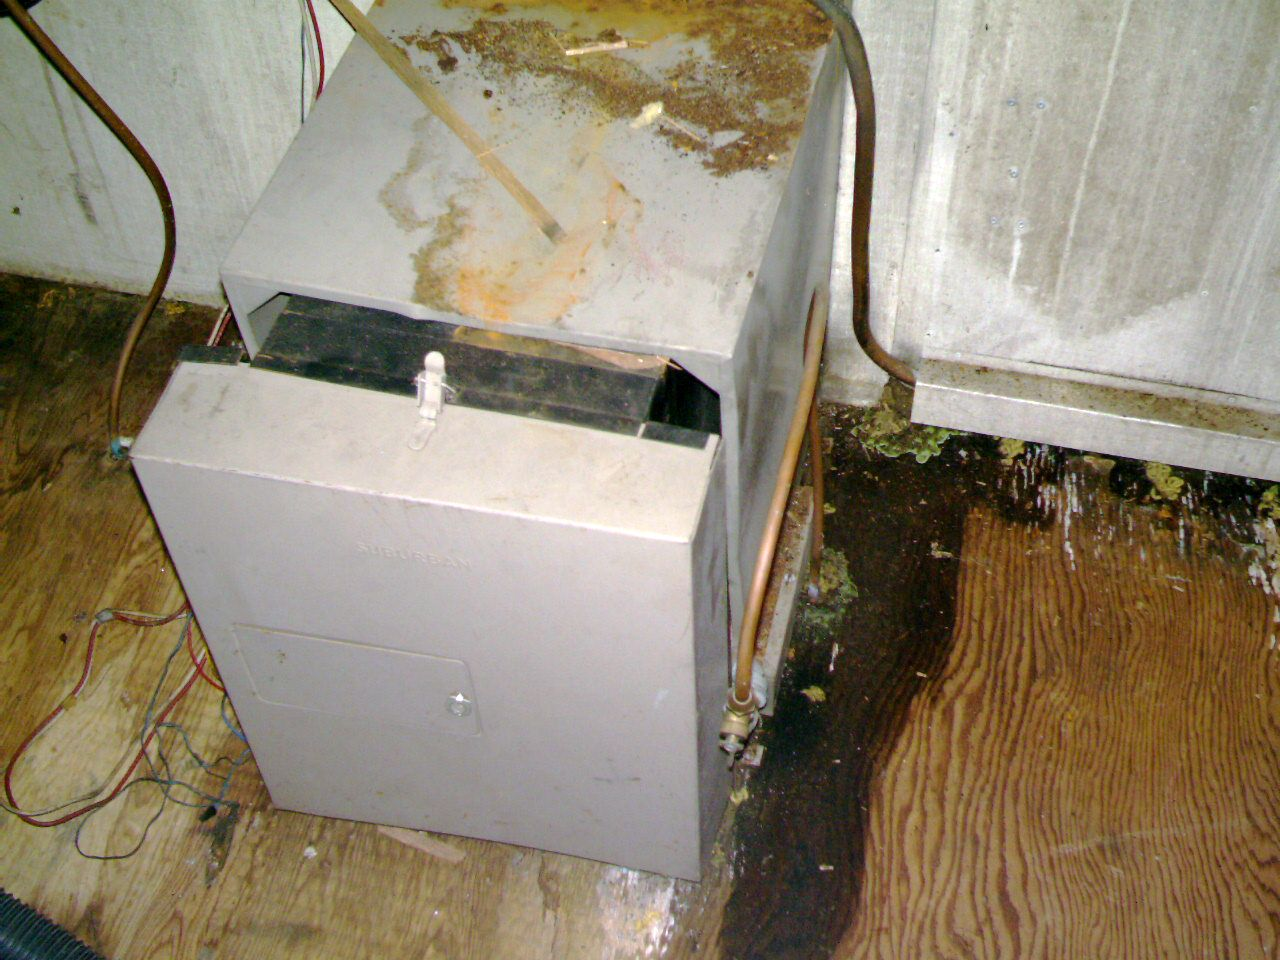 Click image for larger version  Name:Furnace.jpg Views:120 Size:200.2 KB ID:50905